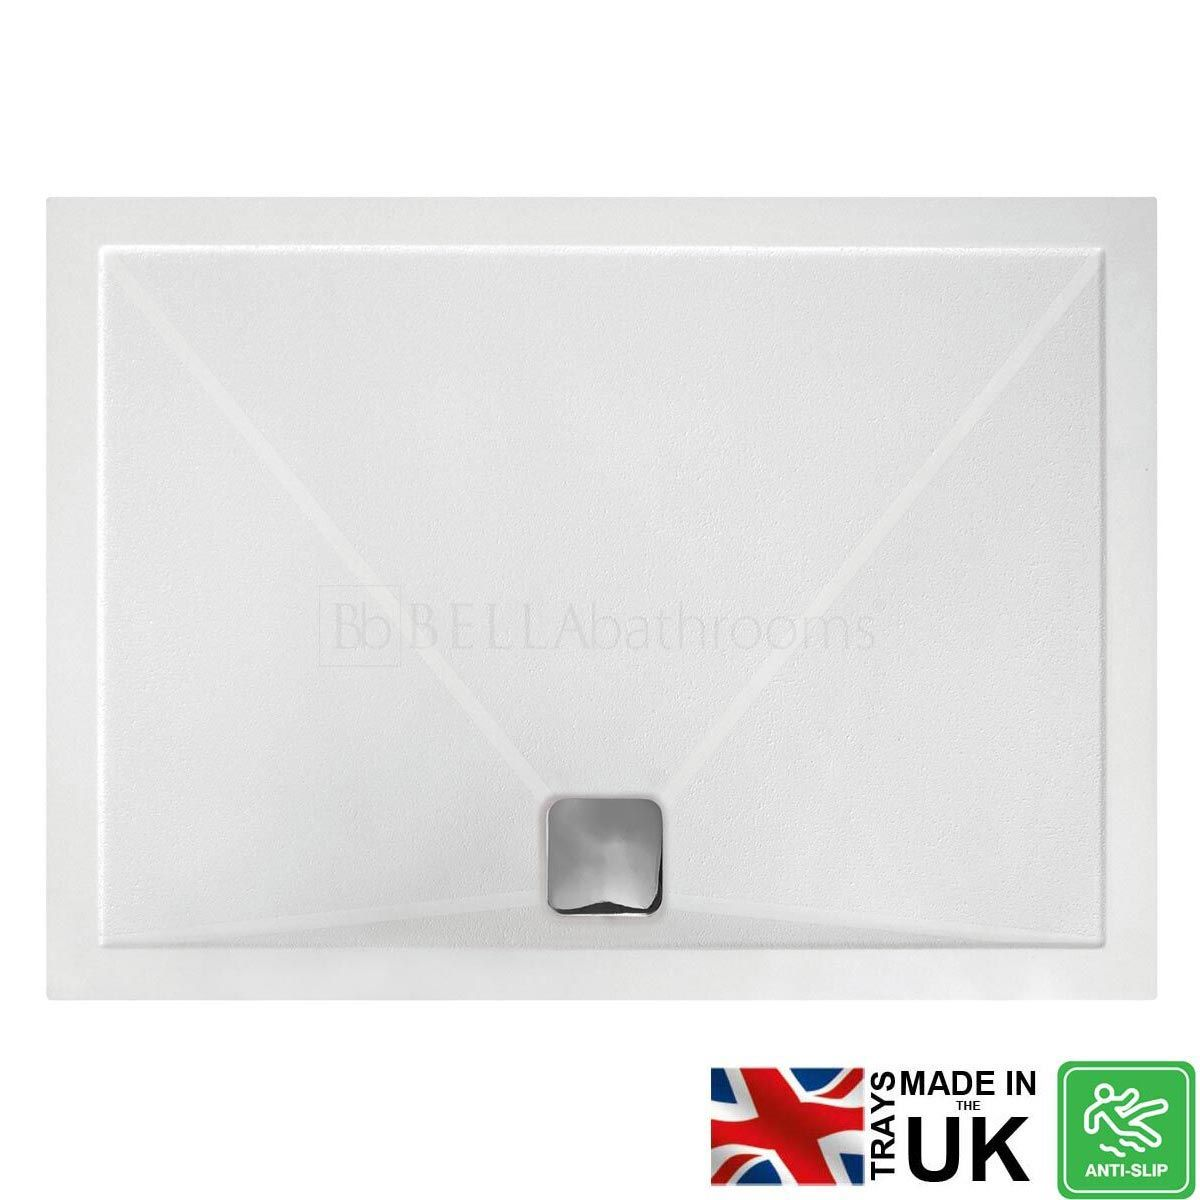 Bathrooms To Love Rectangular Anti-Slip Shower Tray with Waste 1000 x 800